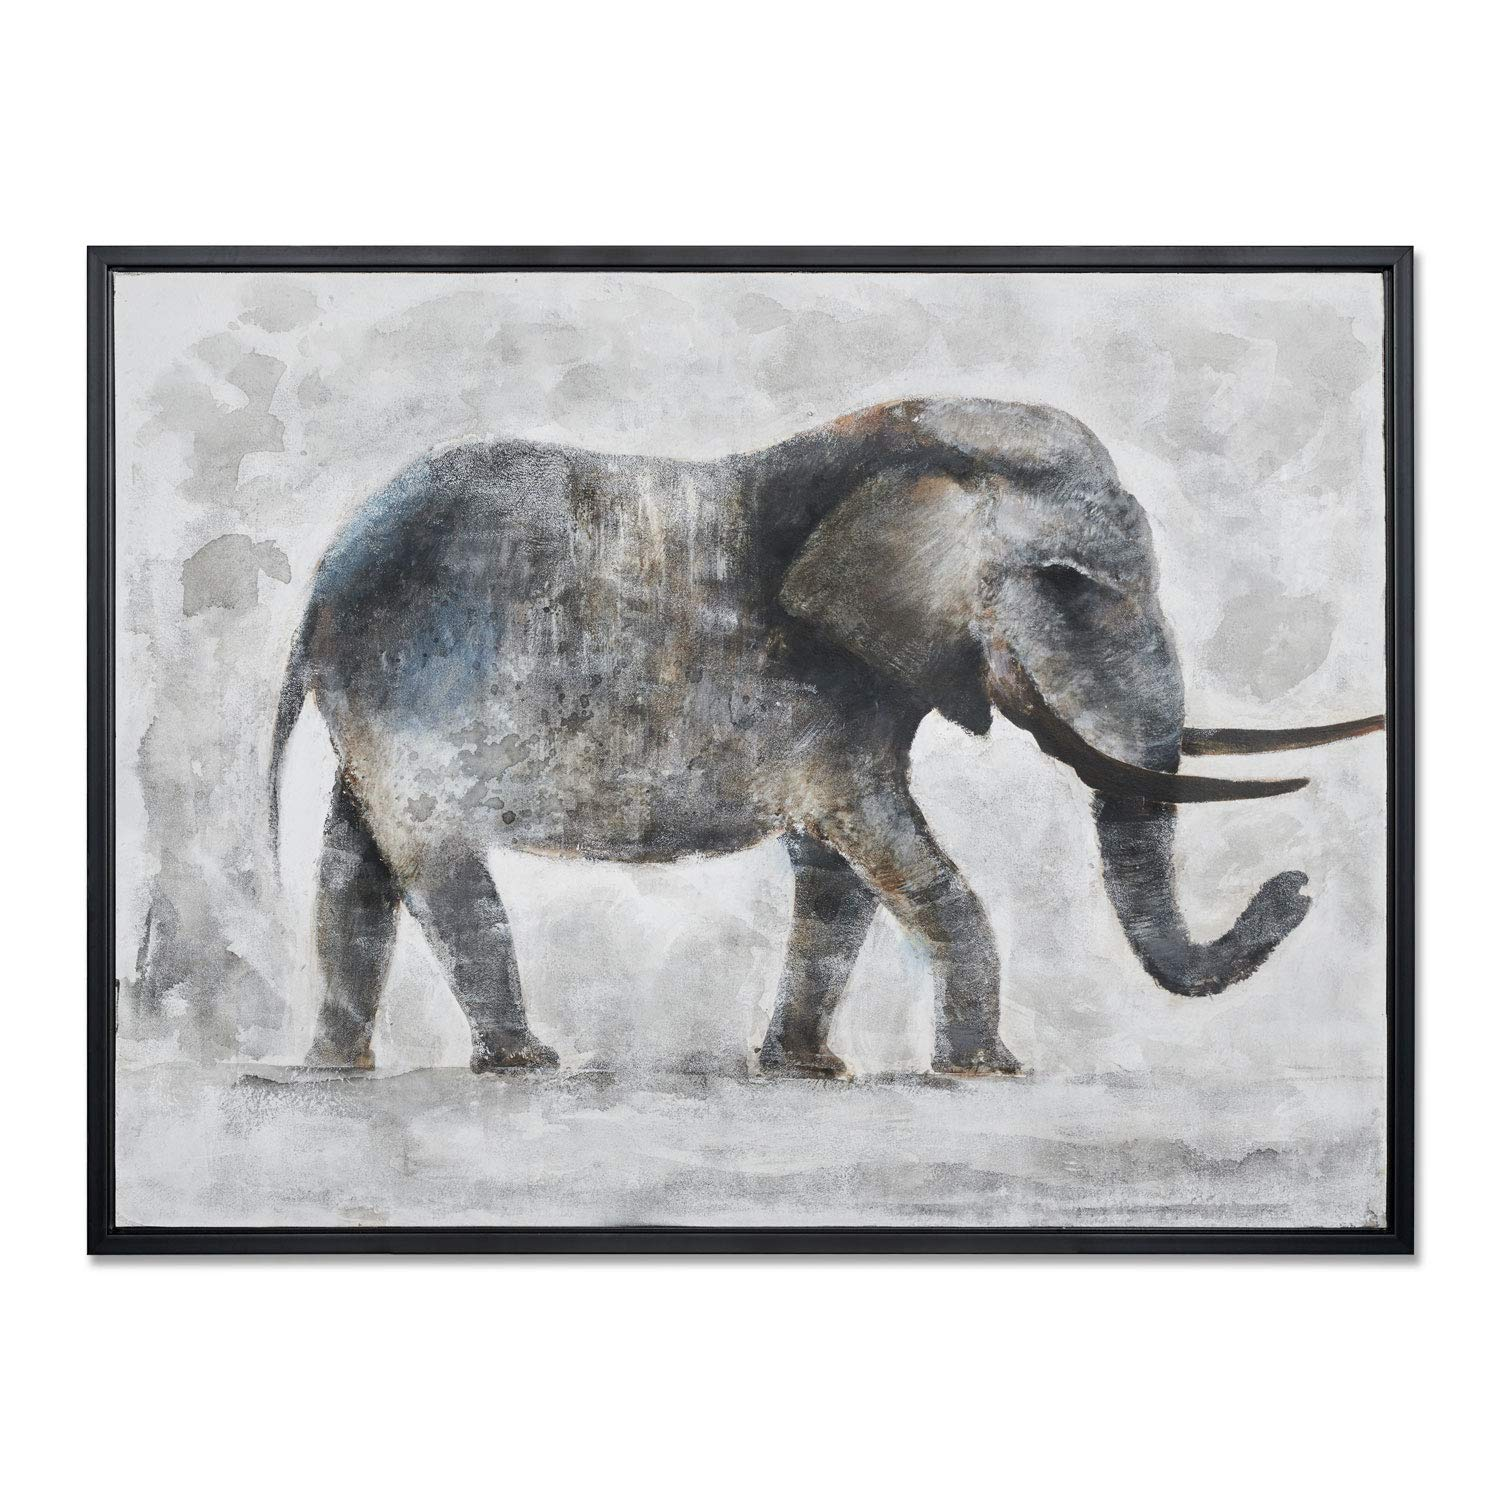 MOTINI Elephant Oil Painting on Canvas Hand Painted Framed Animal Painting, 30 x 40 Large Wall Paintings for Living Room Kitchen and Dining, Ready to Hang